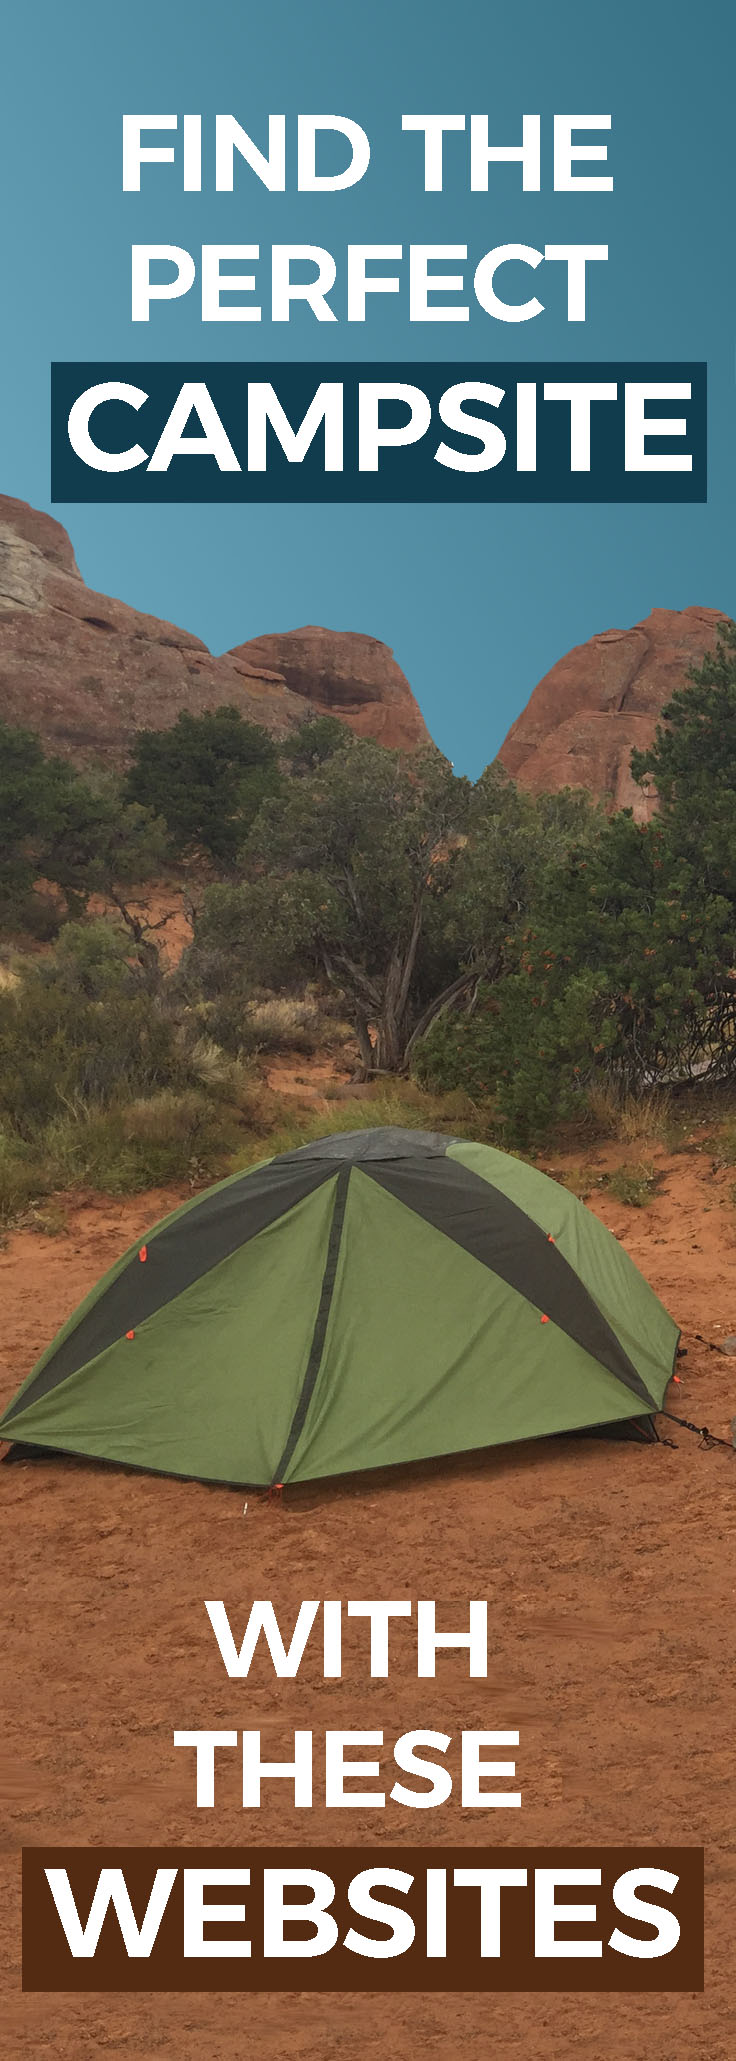 Find the perfect campsite with these websites. - theweekendguide.com